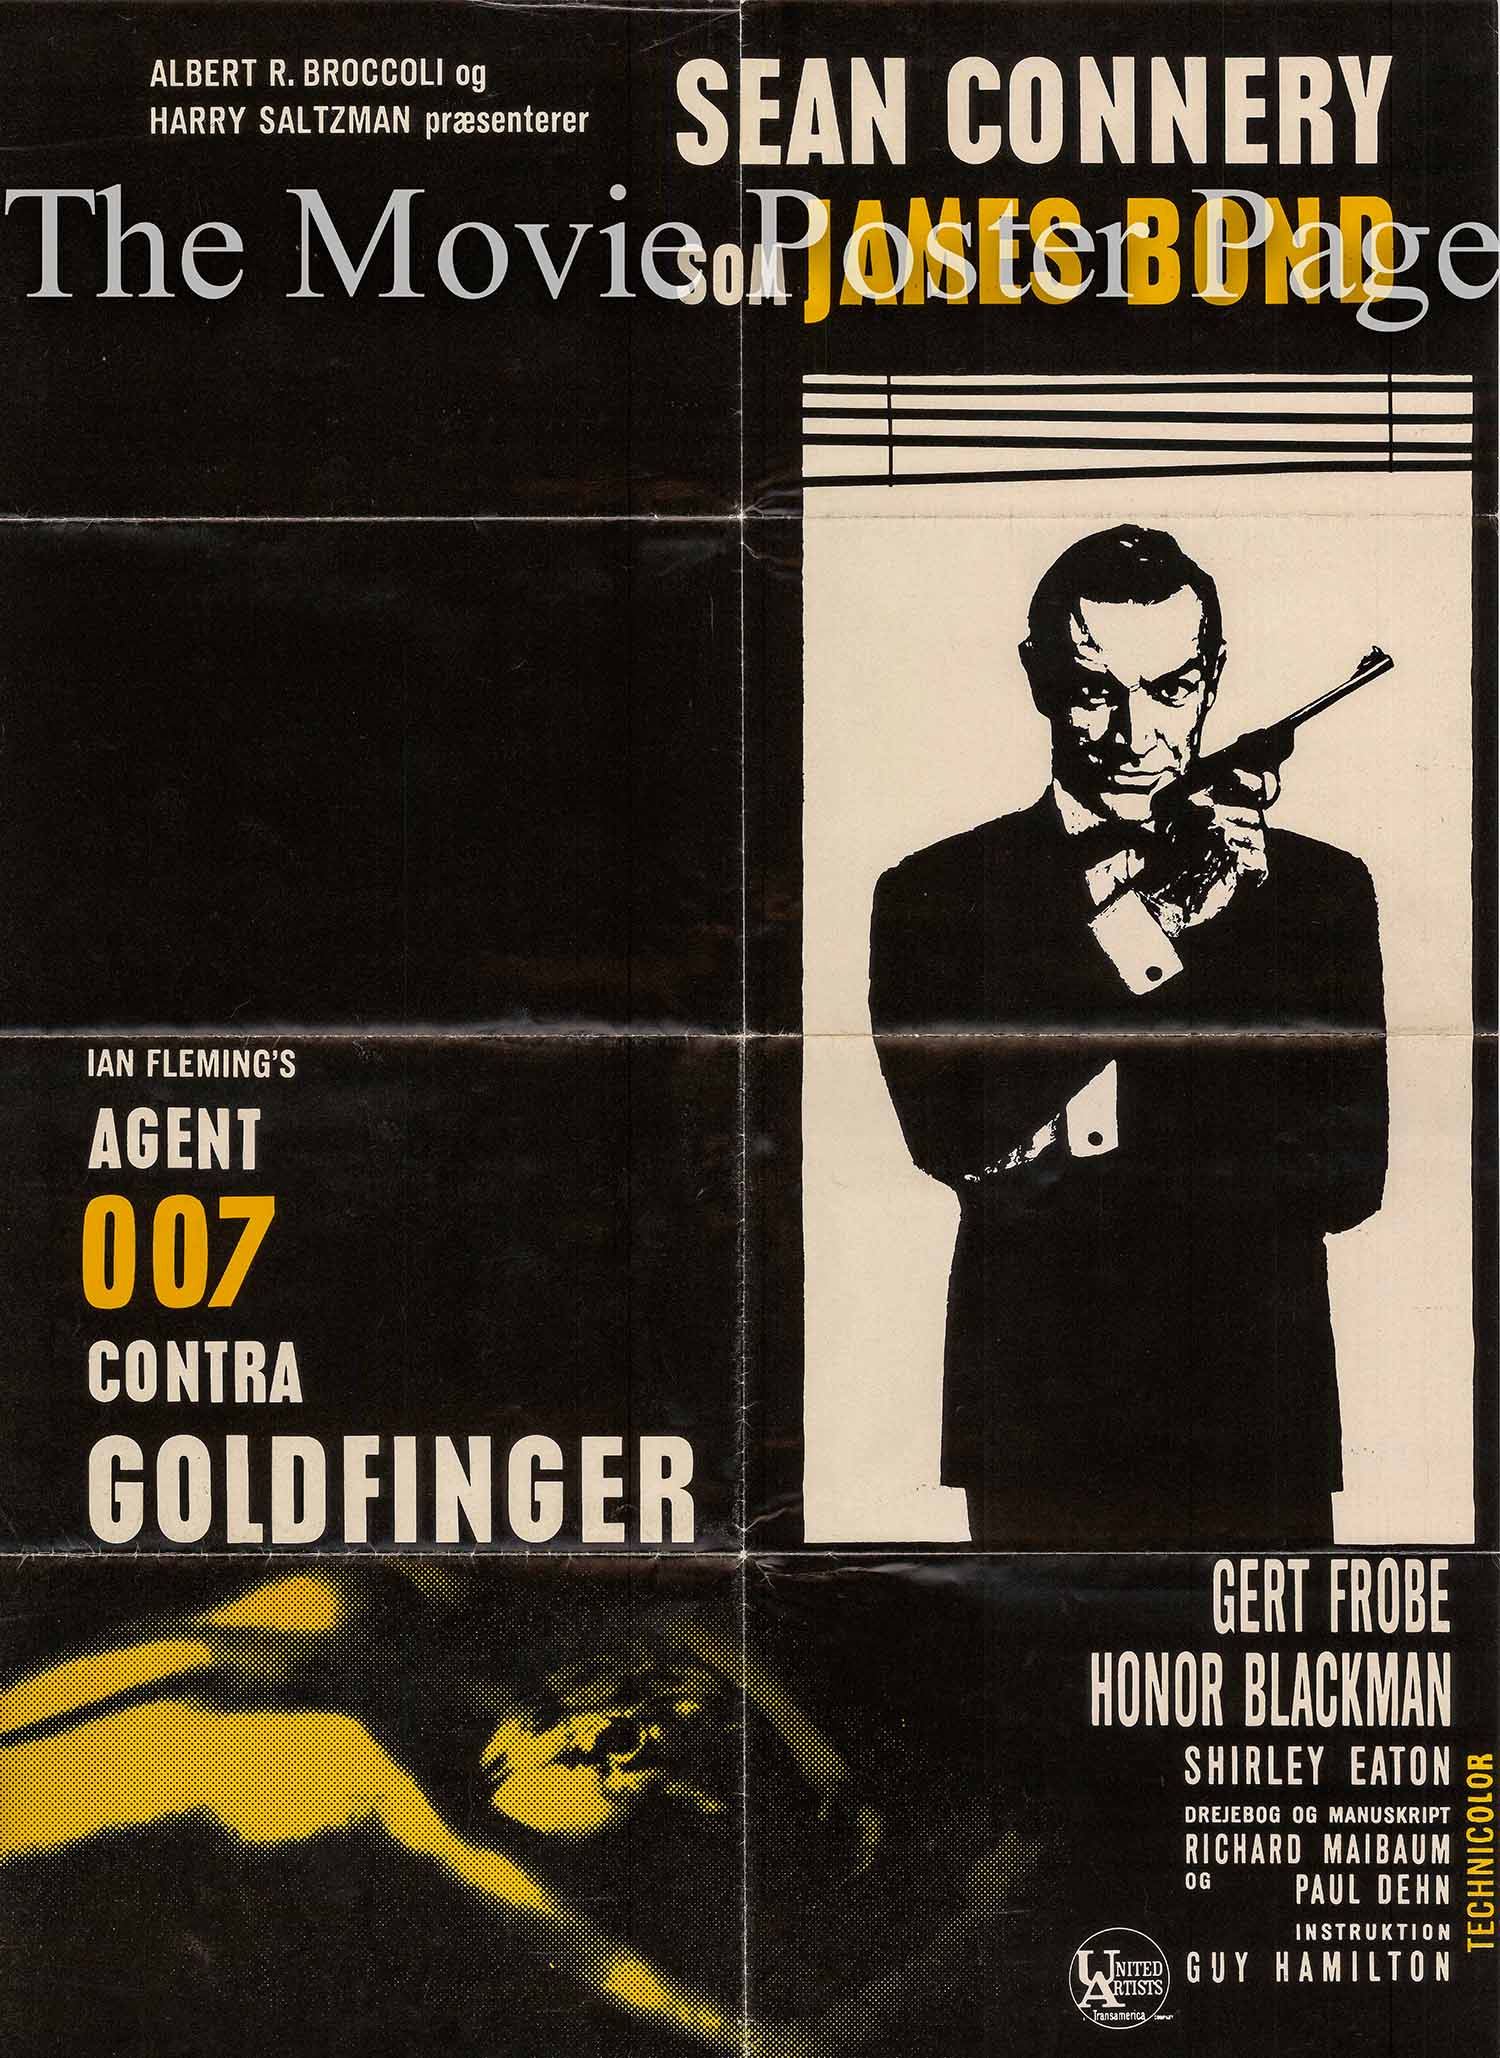 Pictured is a Danish promotional poster made in 1967 for a rerelease of the 1964 Guy Hamilton film Goldfi